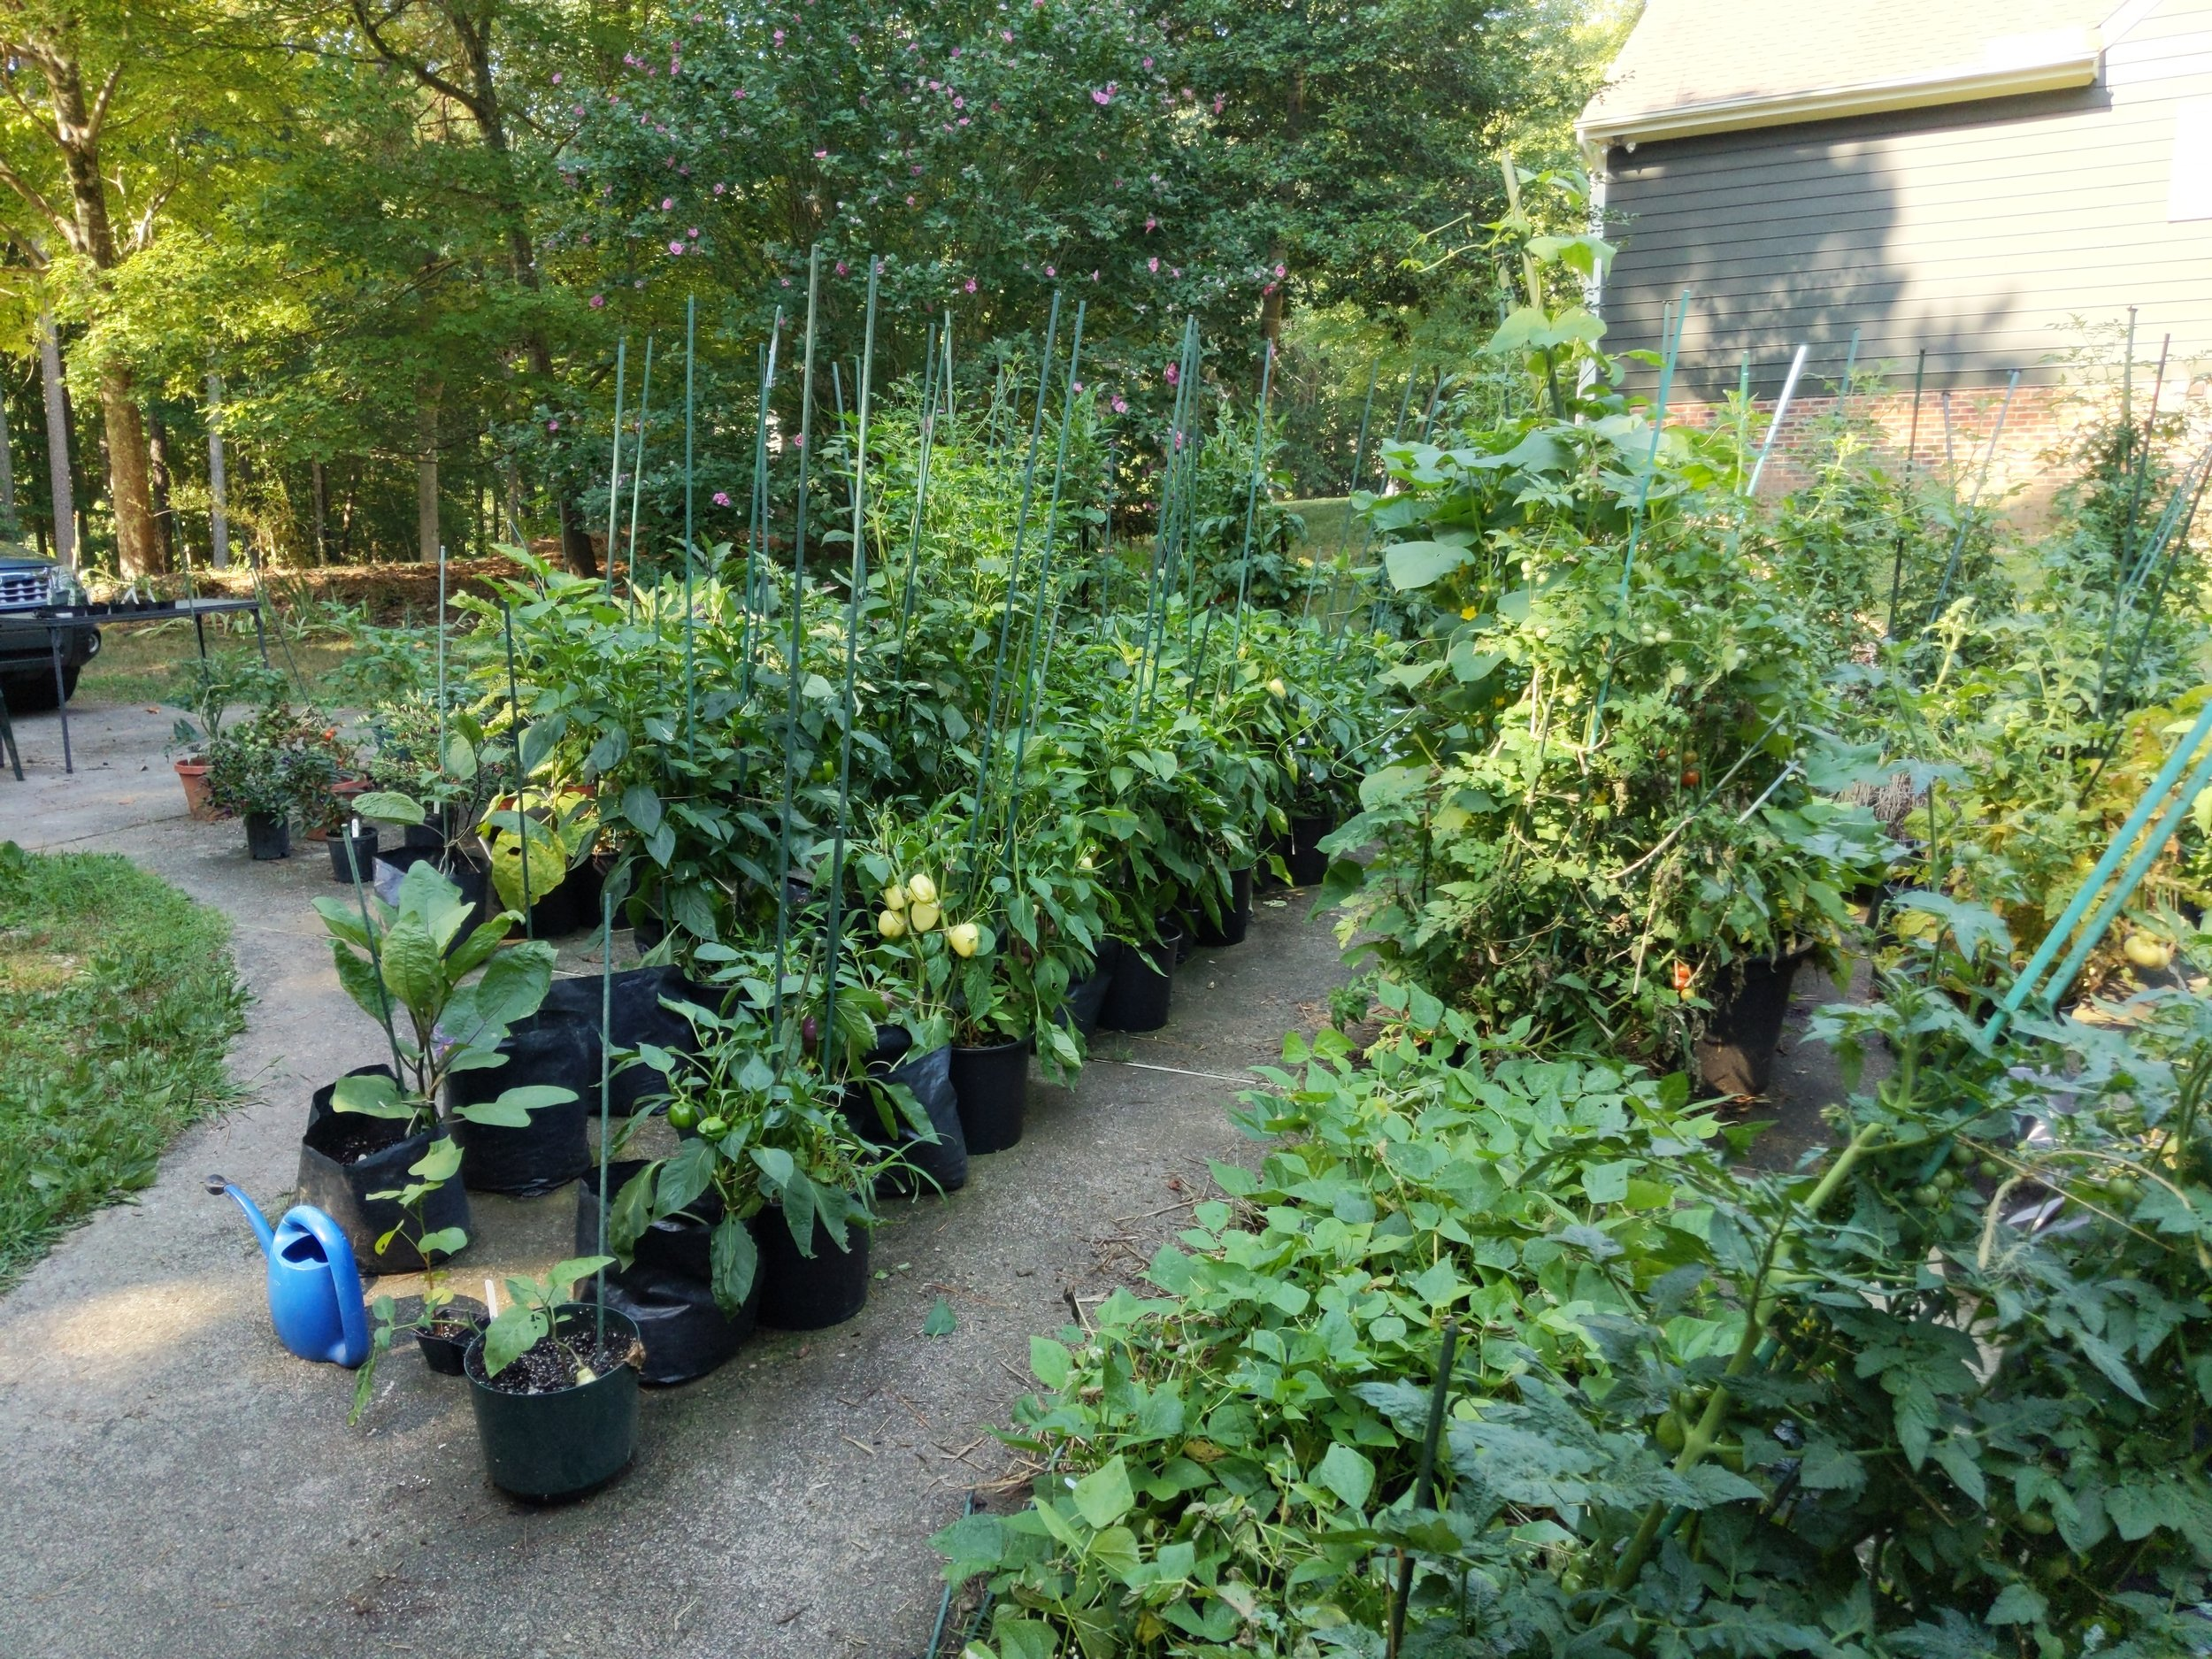 View of the pepper/eggplant/bean section of the garden on July 15. The visibility of the bell peppers is due to deer browsing of the plant tops.